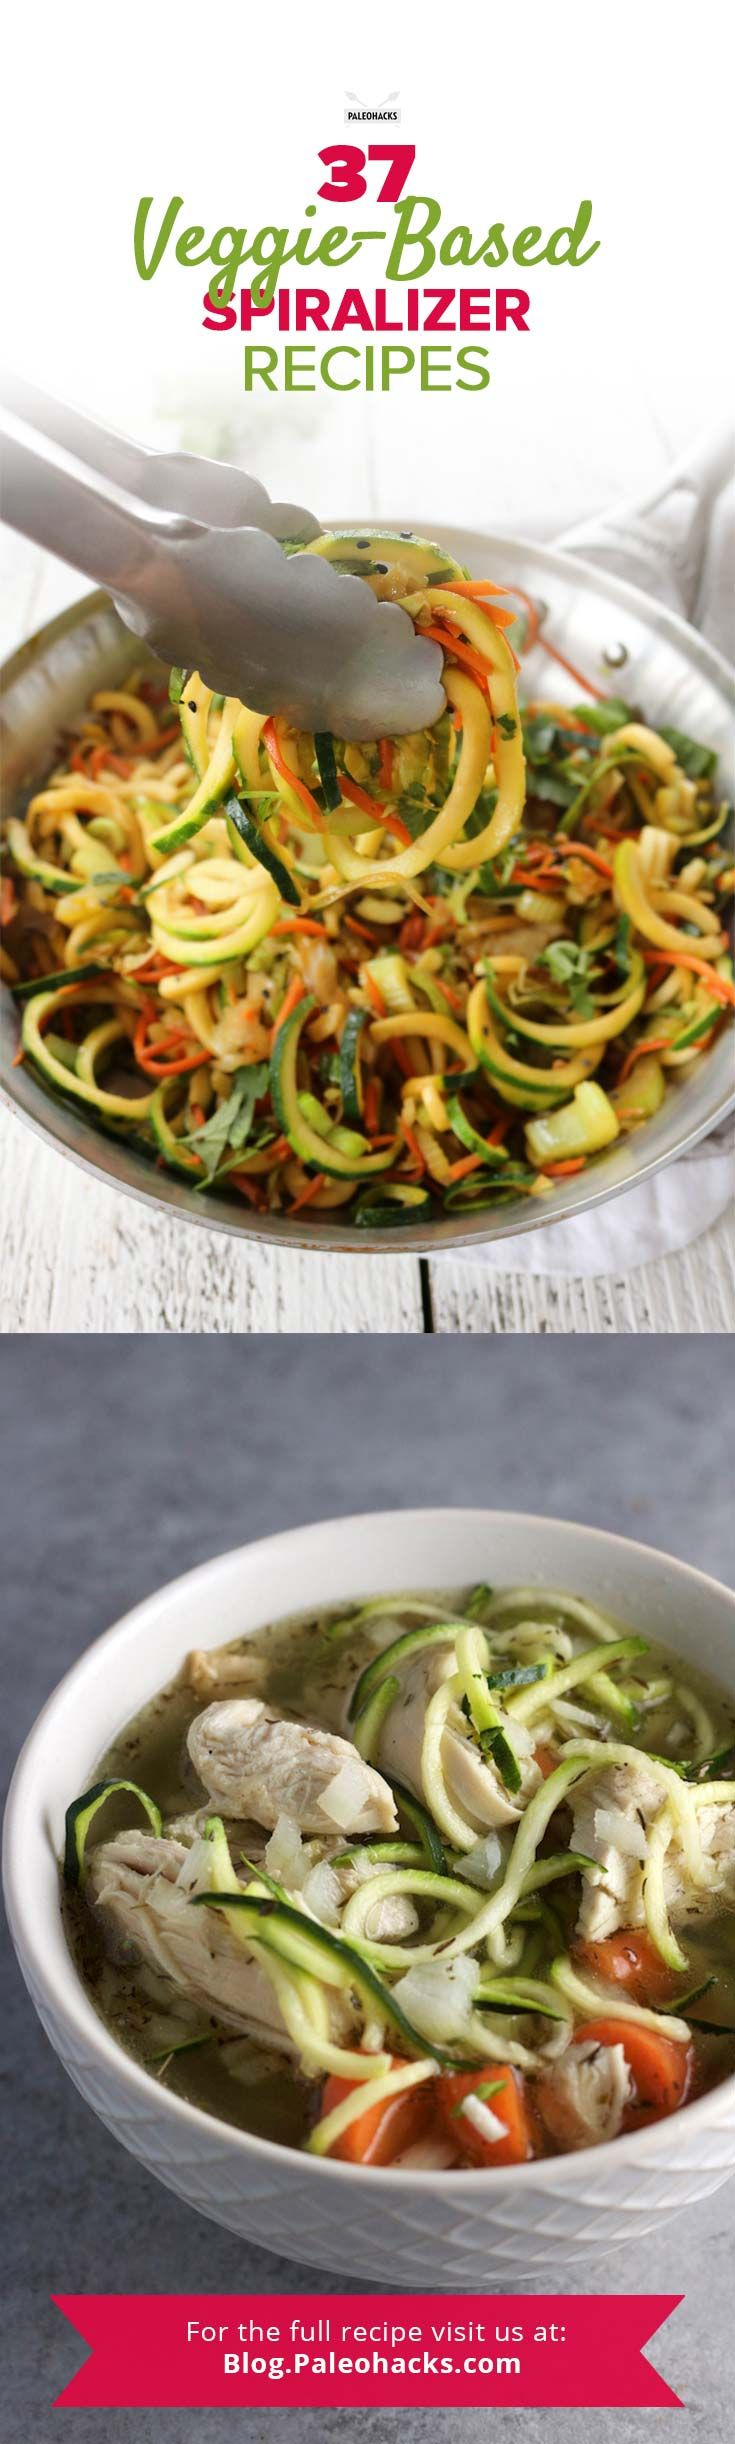 Who needs pasta when you can make super healthy #noodles out of your favorite veggies? Get all the recipes here: http://paleo.co/SpiralizerRcps